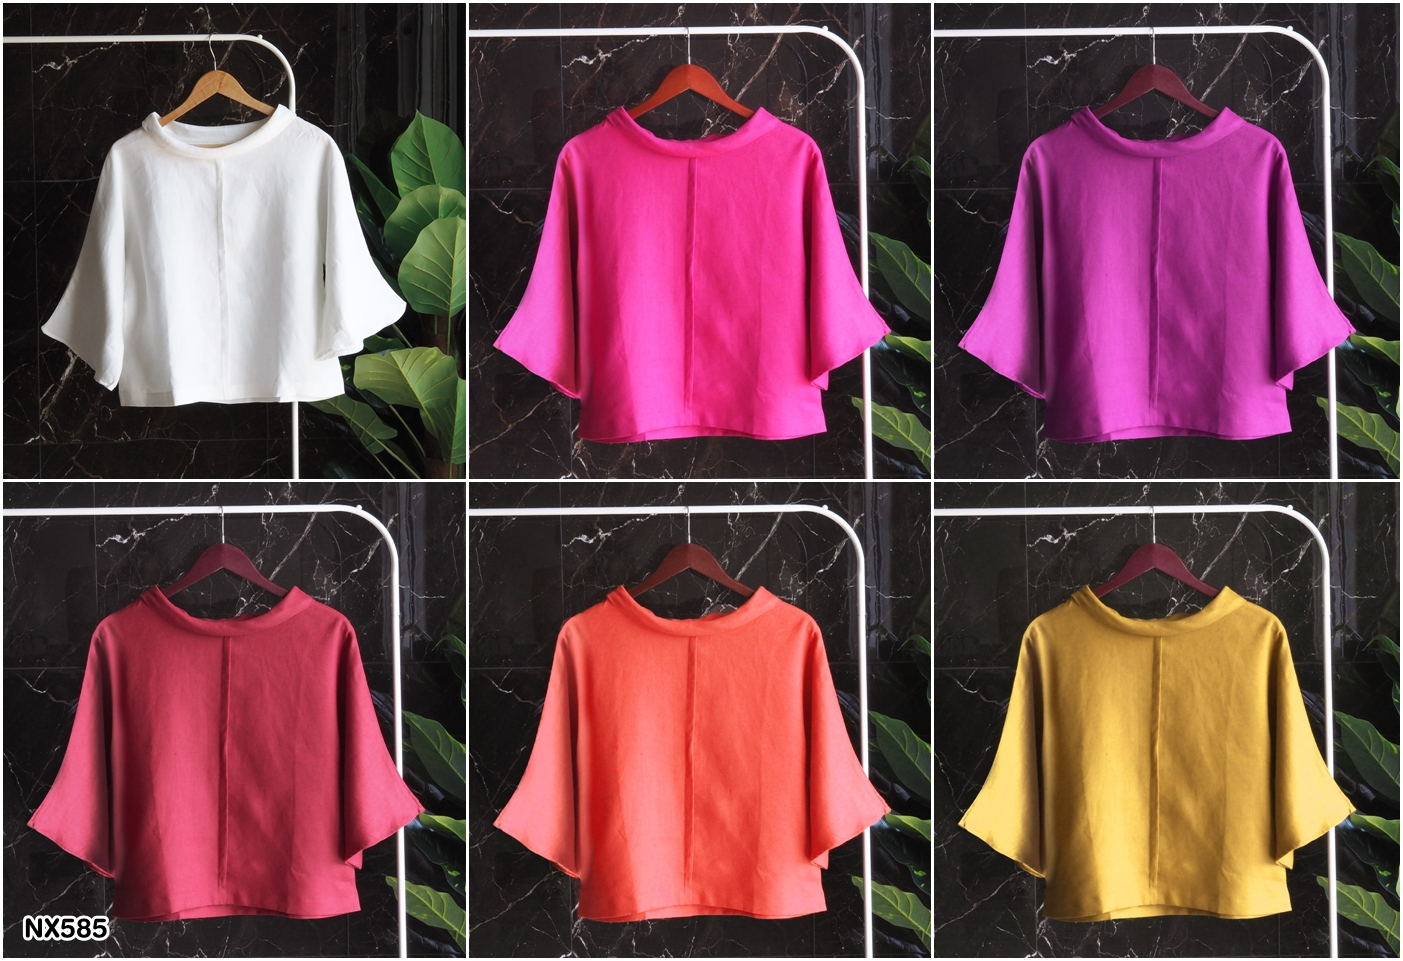 NX585 Linen bell sleeves top